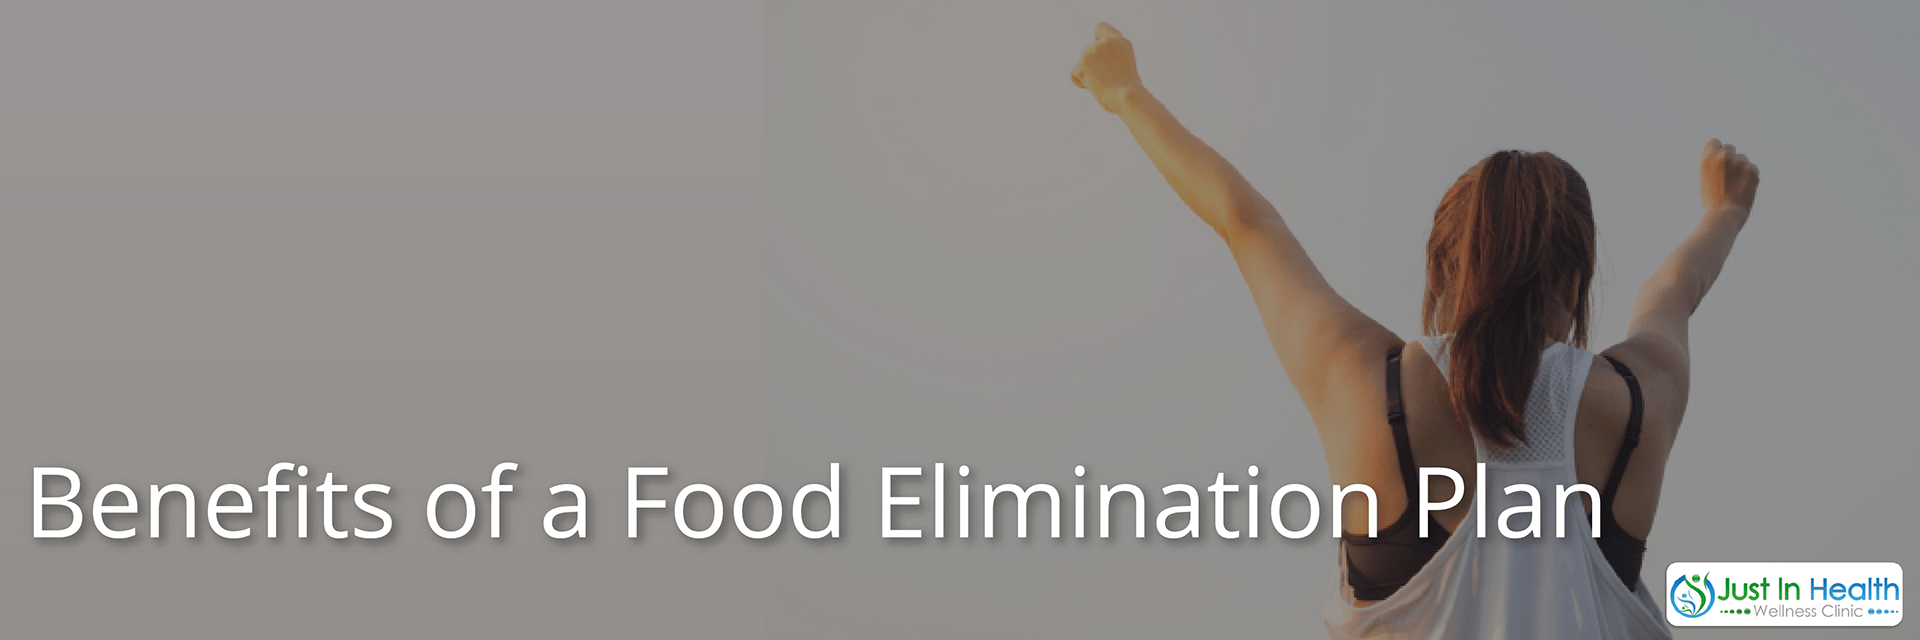 Food elimination plan benefits